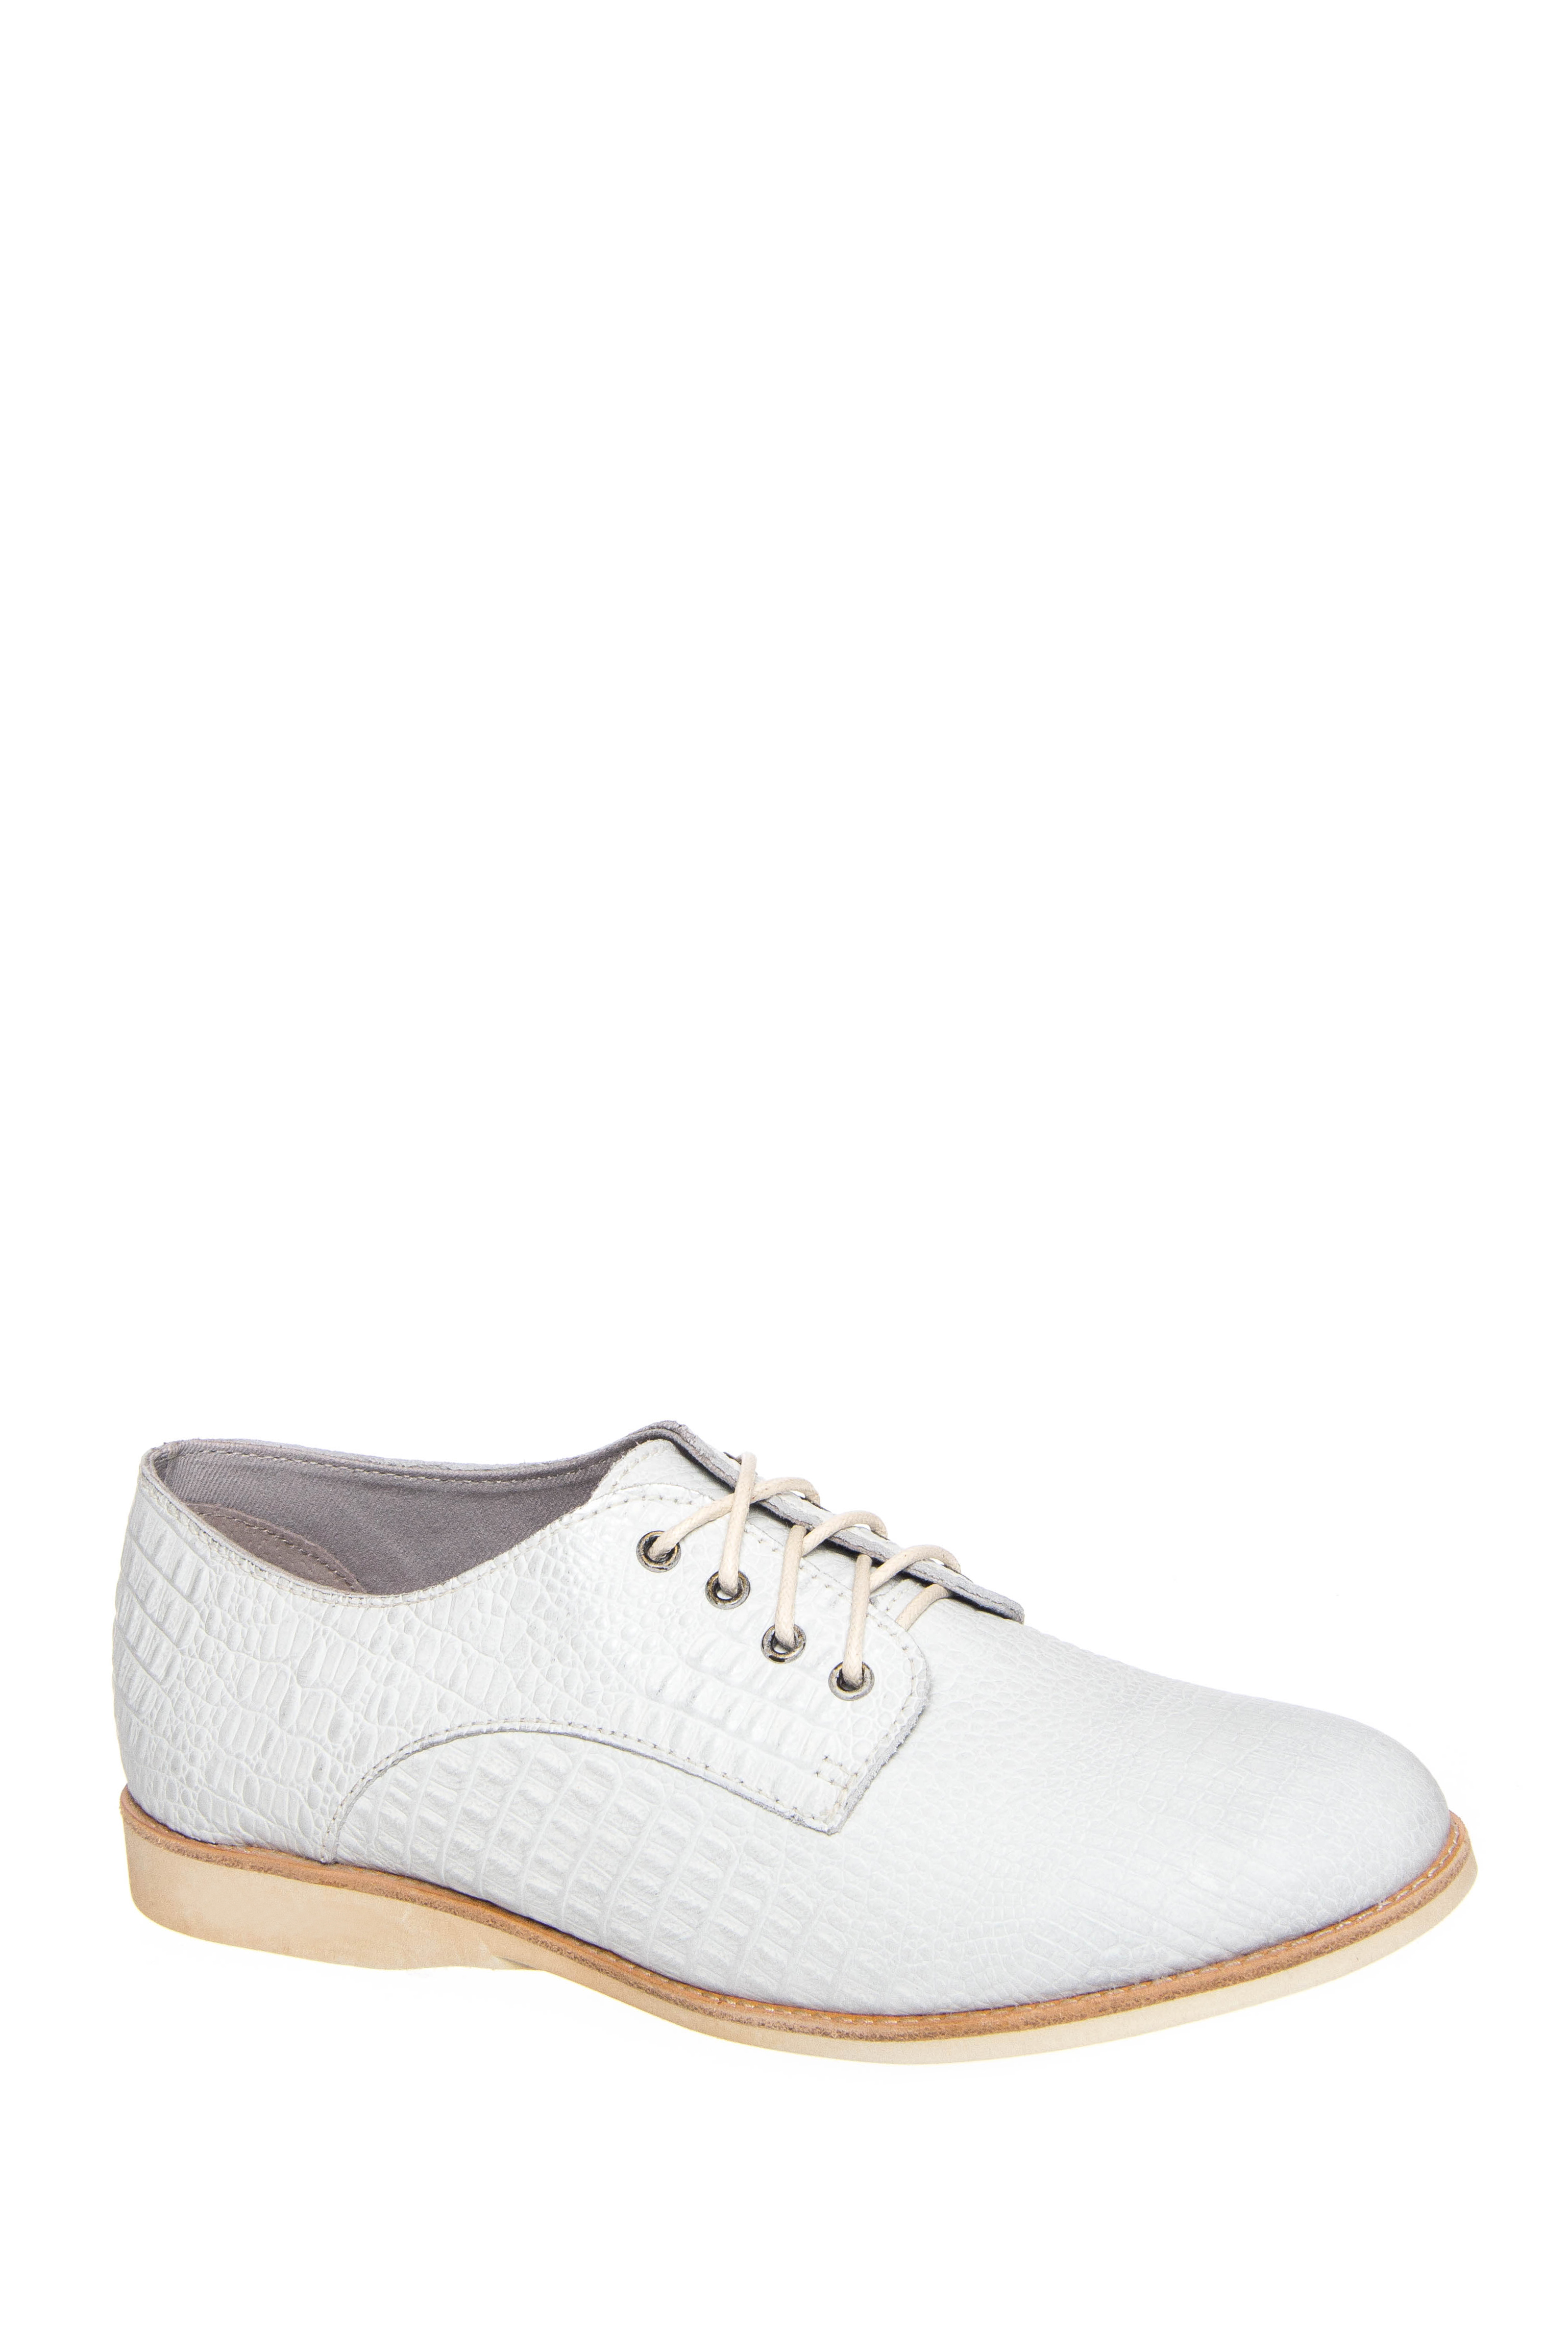 Rollie Nation Derby Lizard Low Heel Oxford